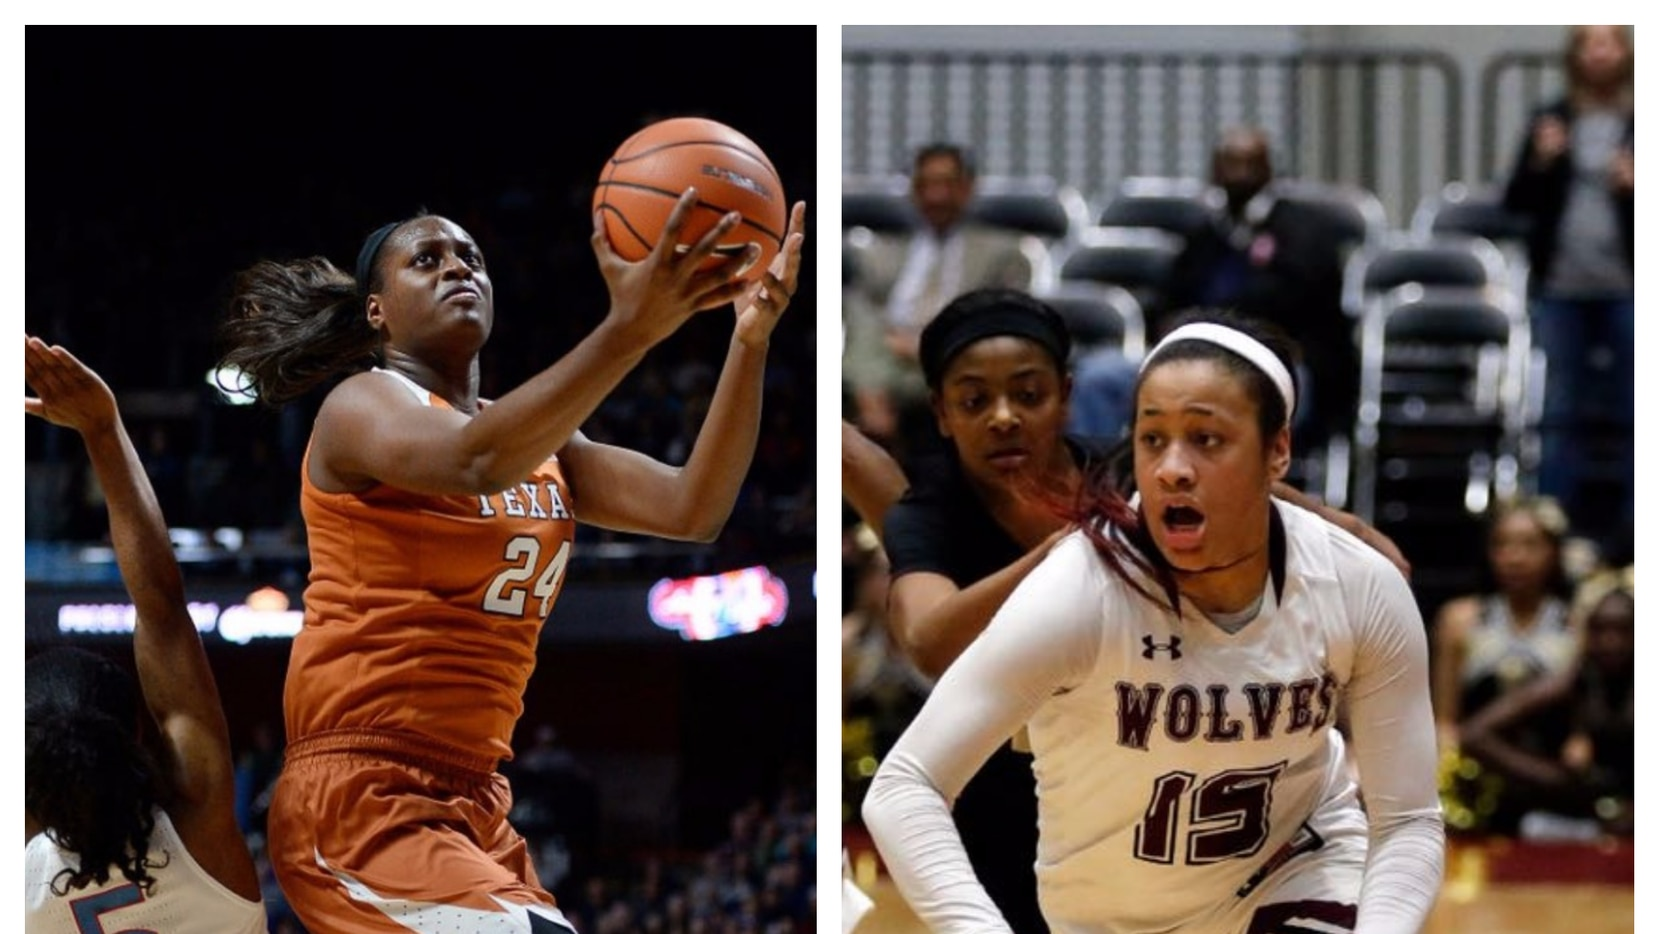 Left: Former Cedar Hill star Joyner Holmes of Texas. Right: Chennedy Carter from Mansfield Timberview.